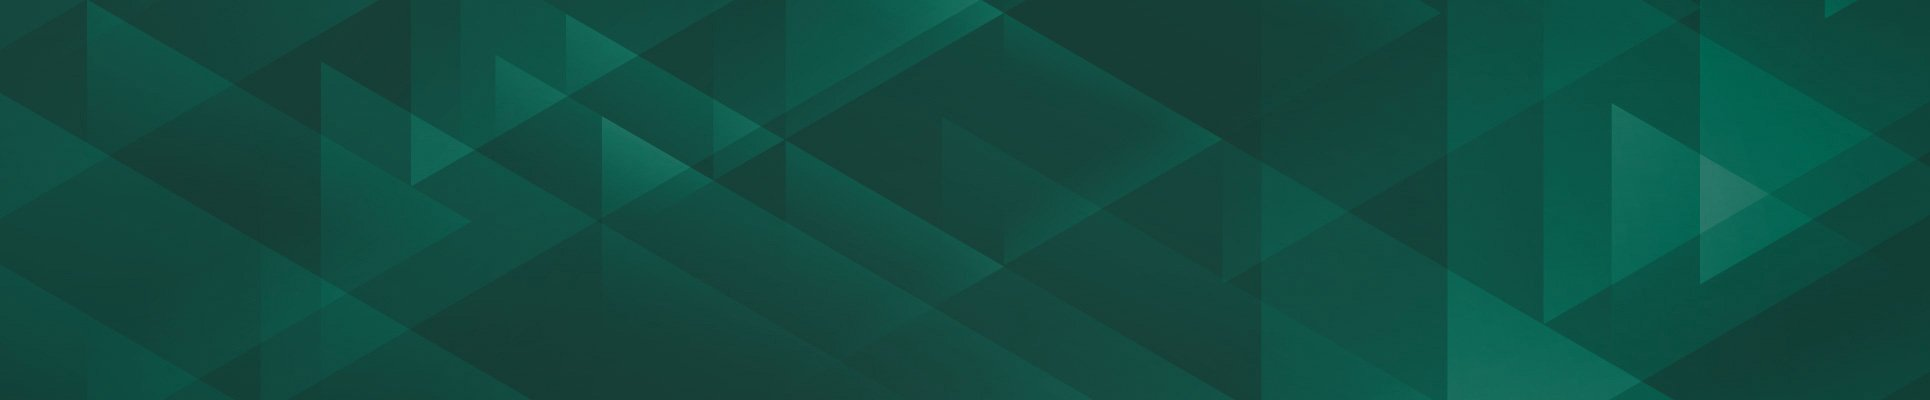 Green Triangle Background